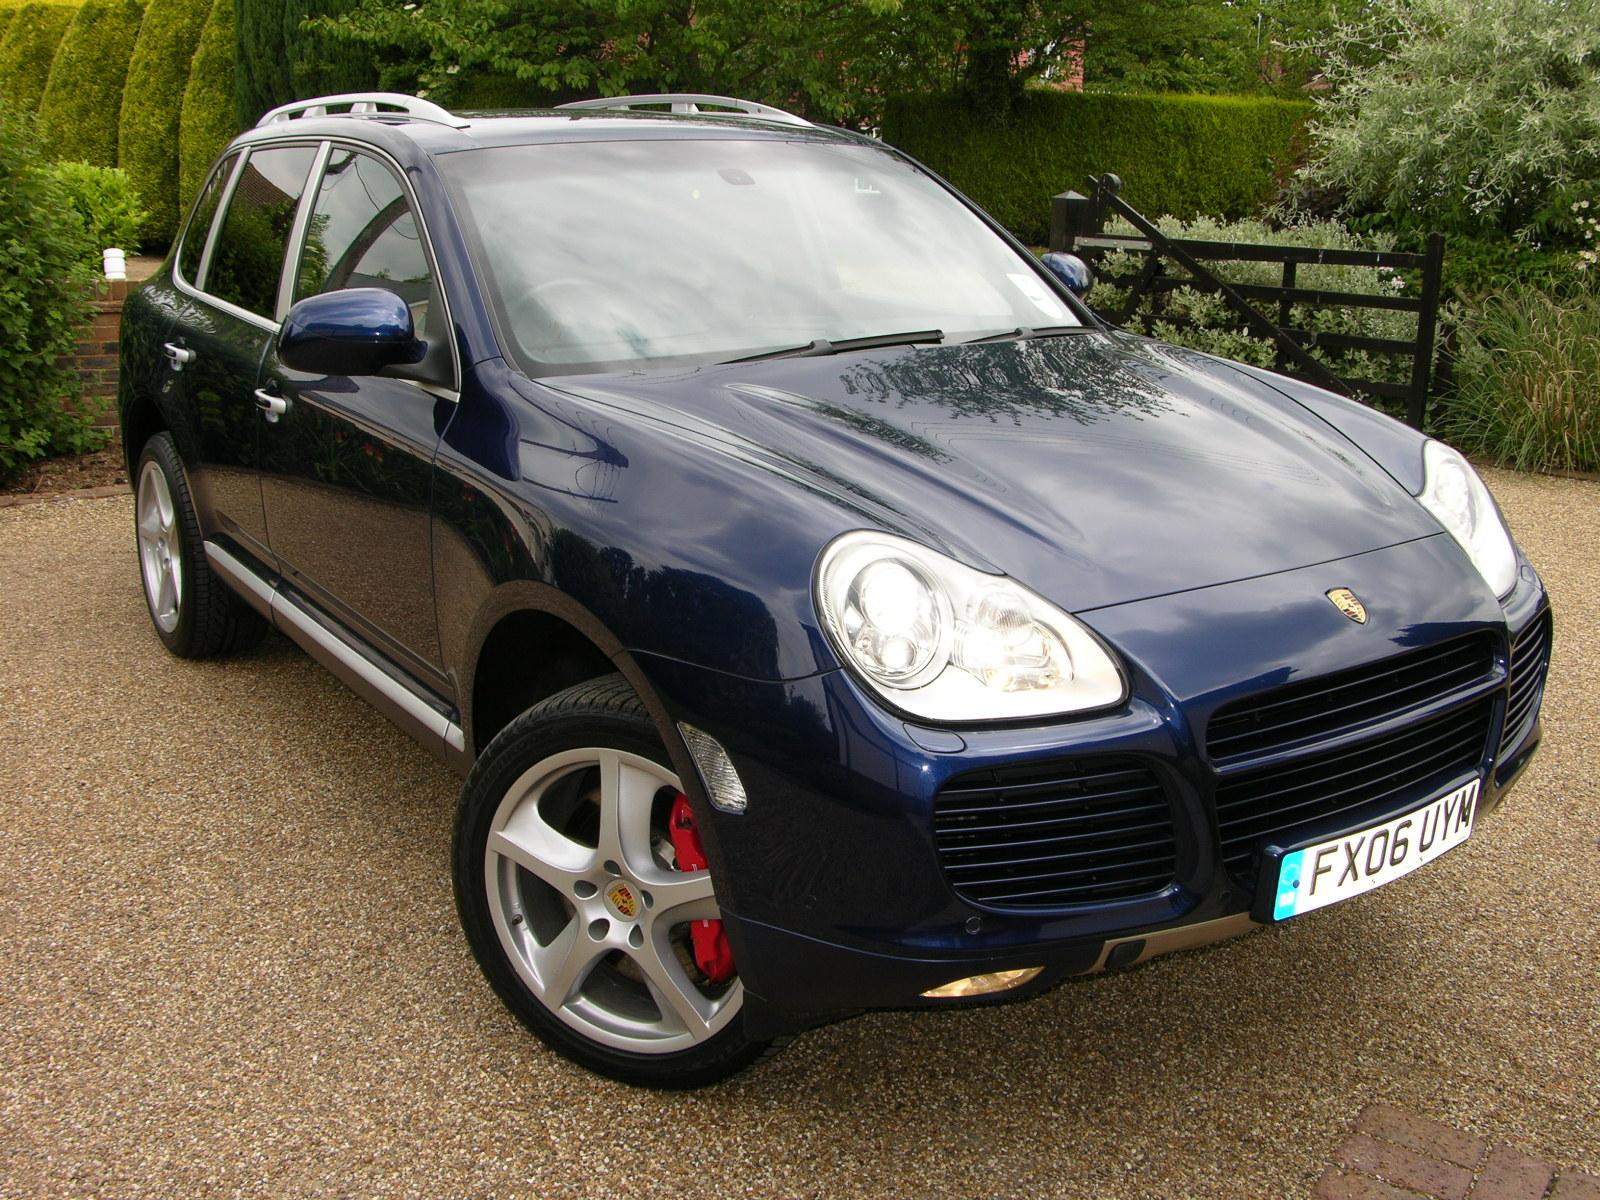 file 2006 porsche cayenne 4 5 turbo s flickr the car spy 23 jpg wikimedia commons. Black Bedroom Furniture Sets. Home Design Ideas